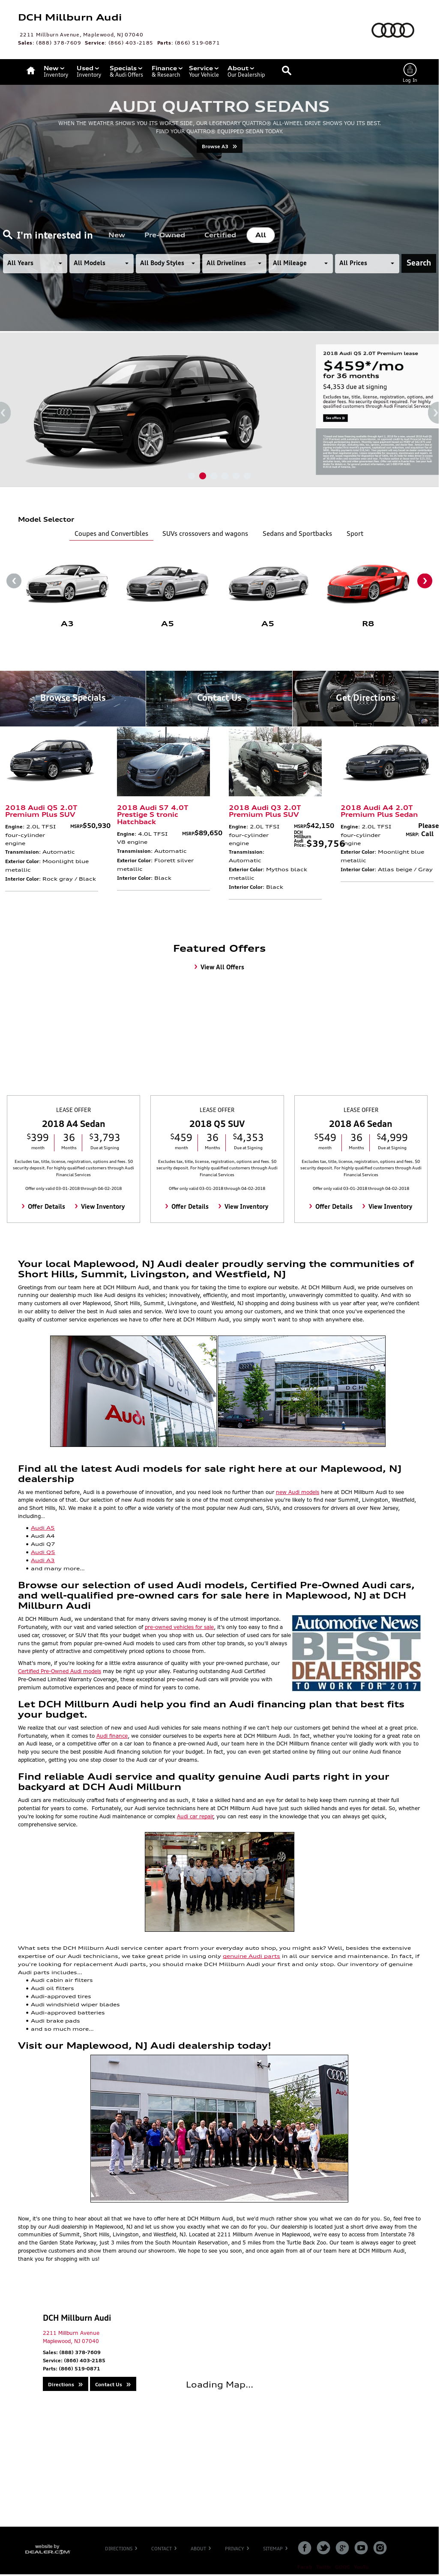 DCH Millburn Audi Competitors Revenue And Employees Owler Company - Dch audi